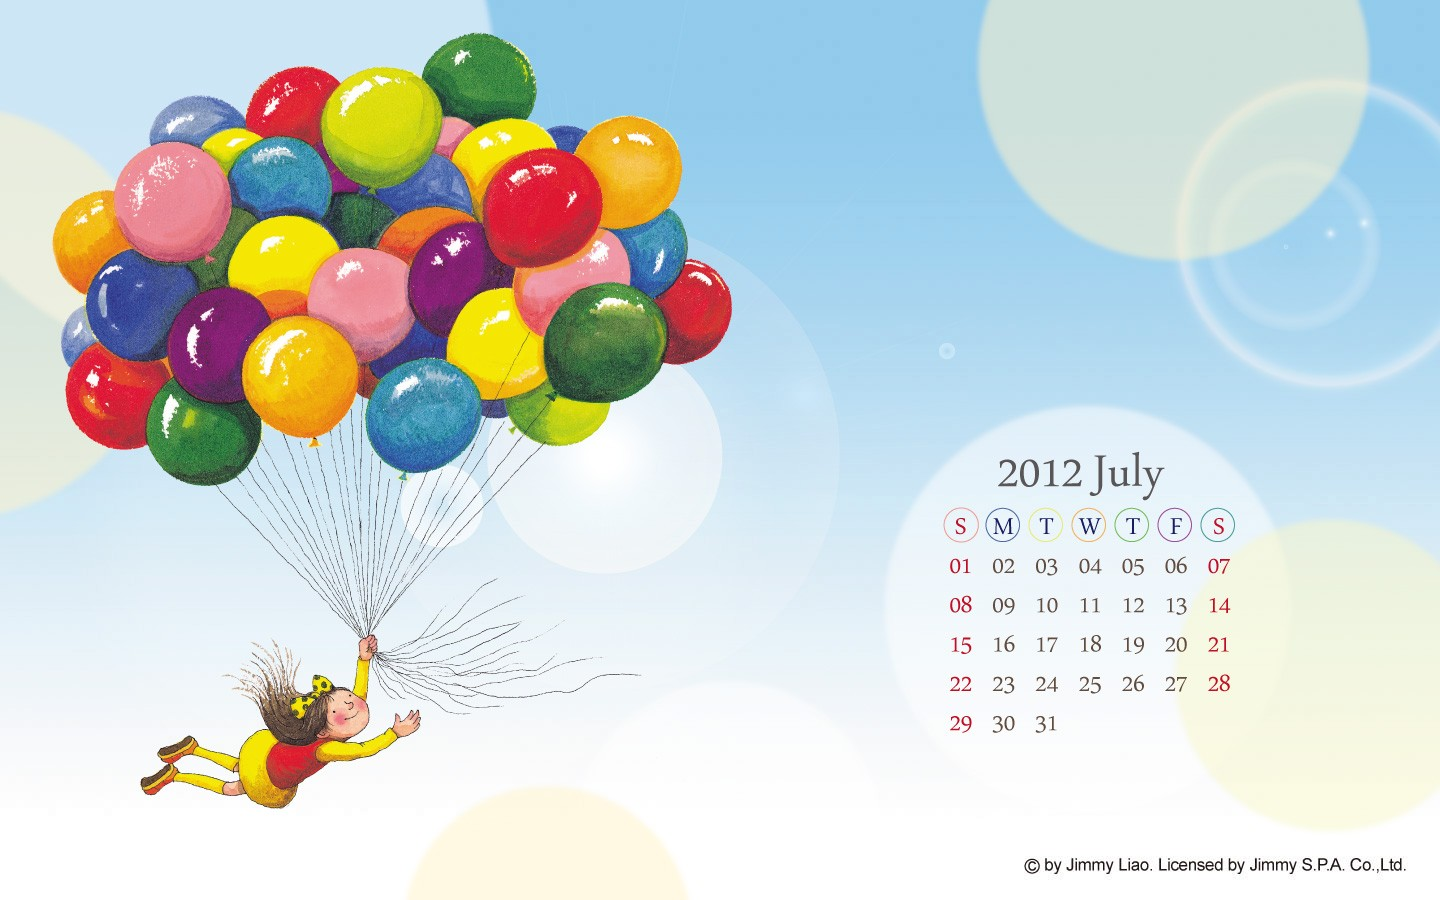 In January Calendar Wallpaper 31440